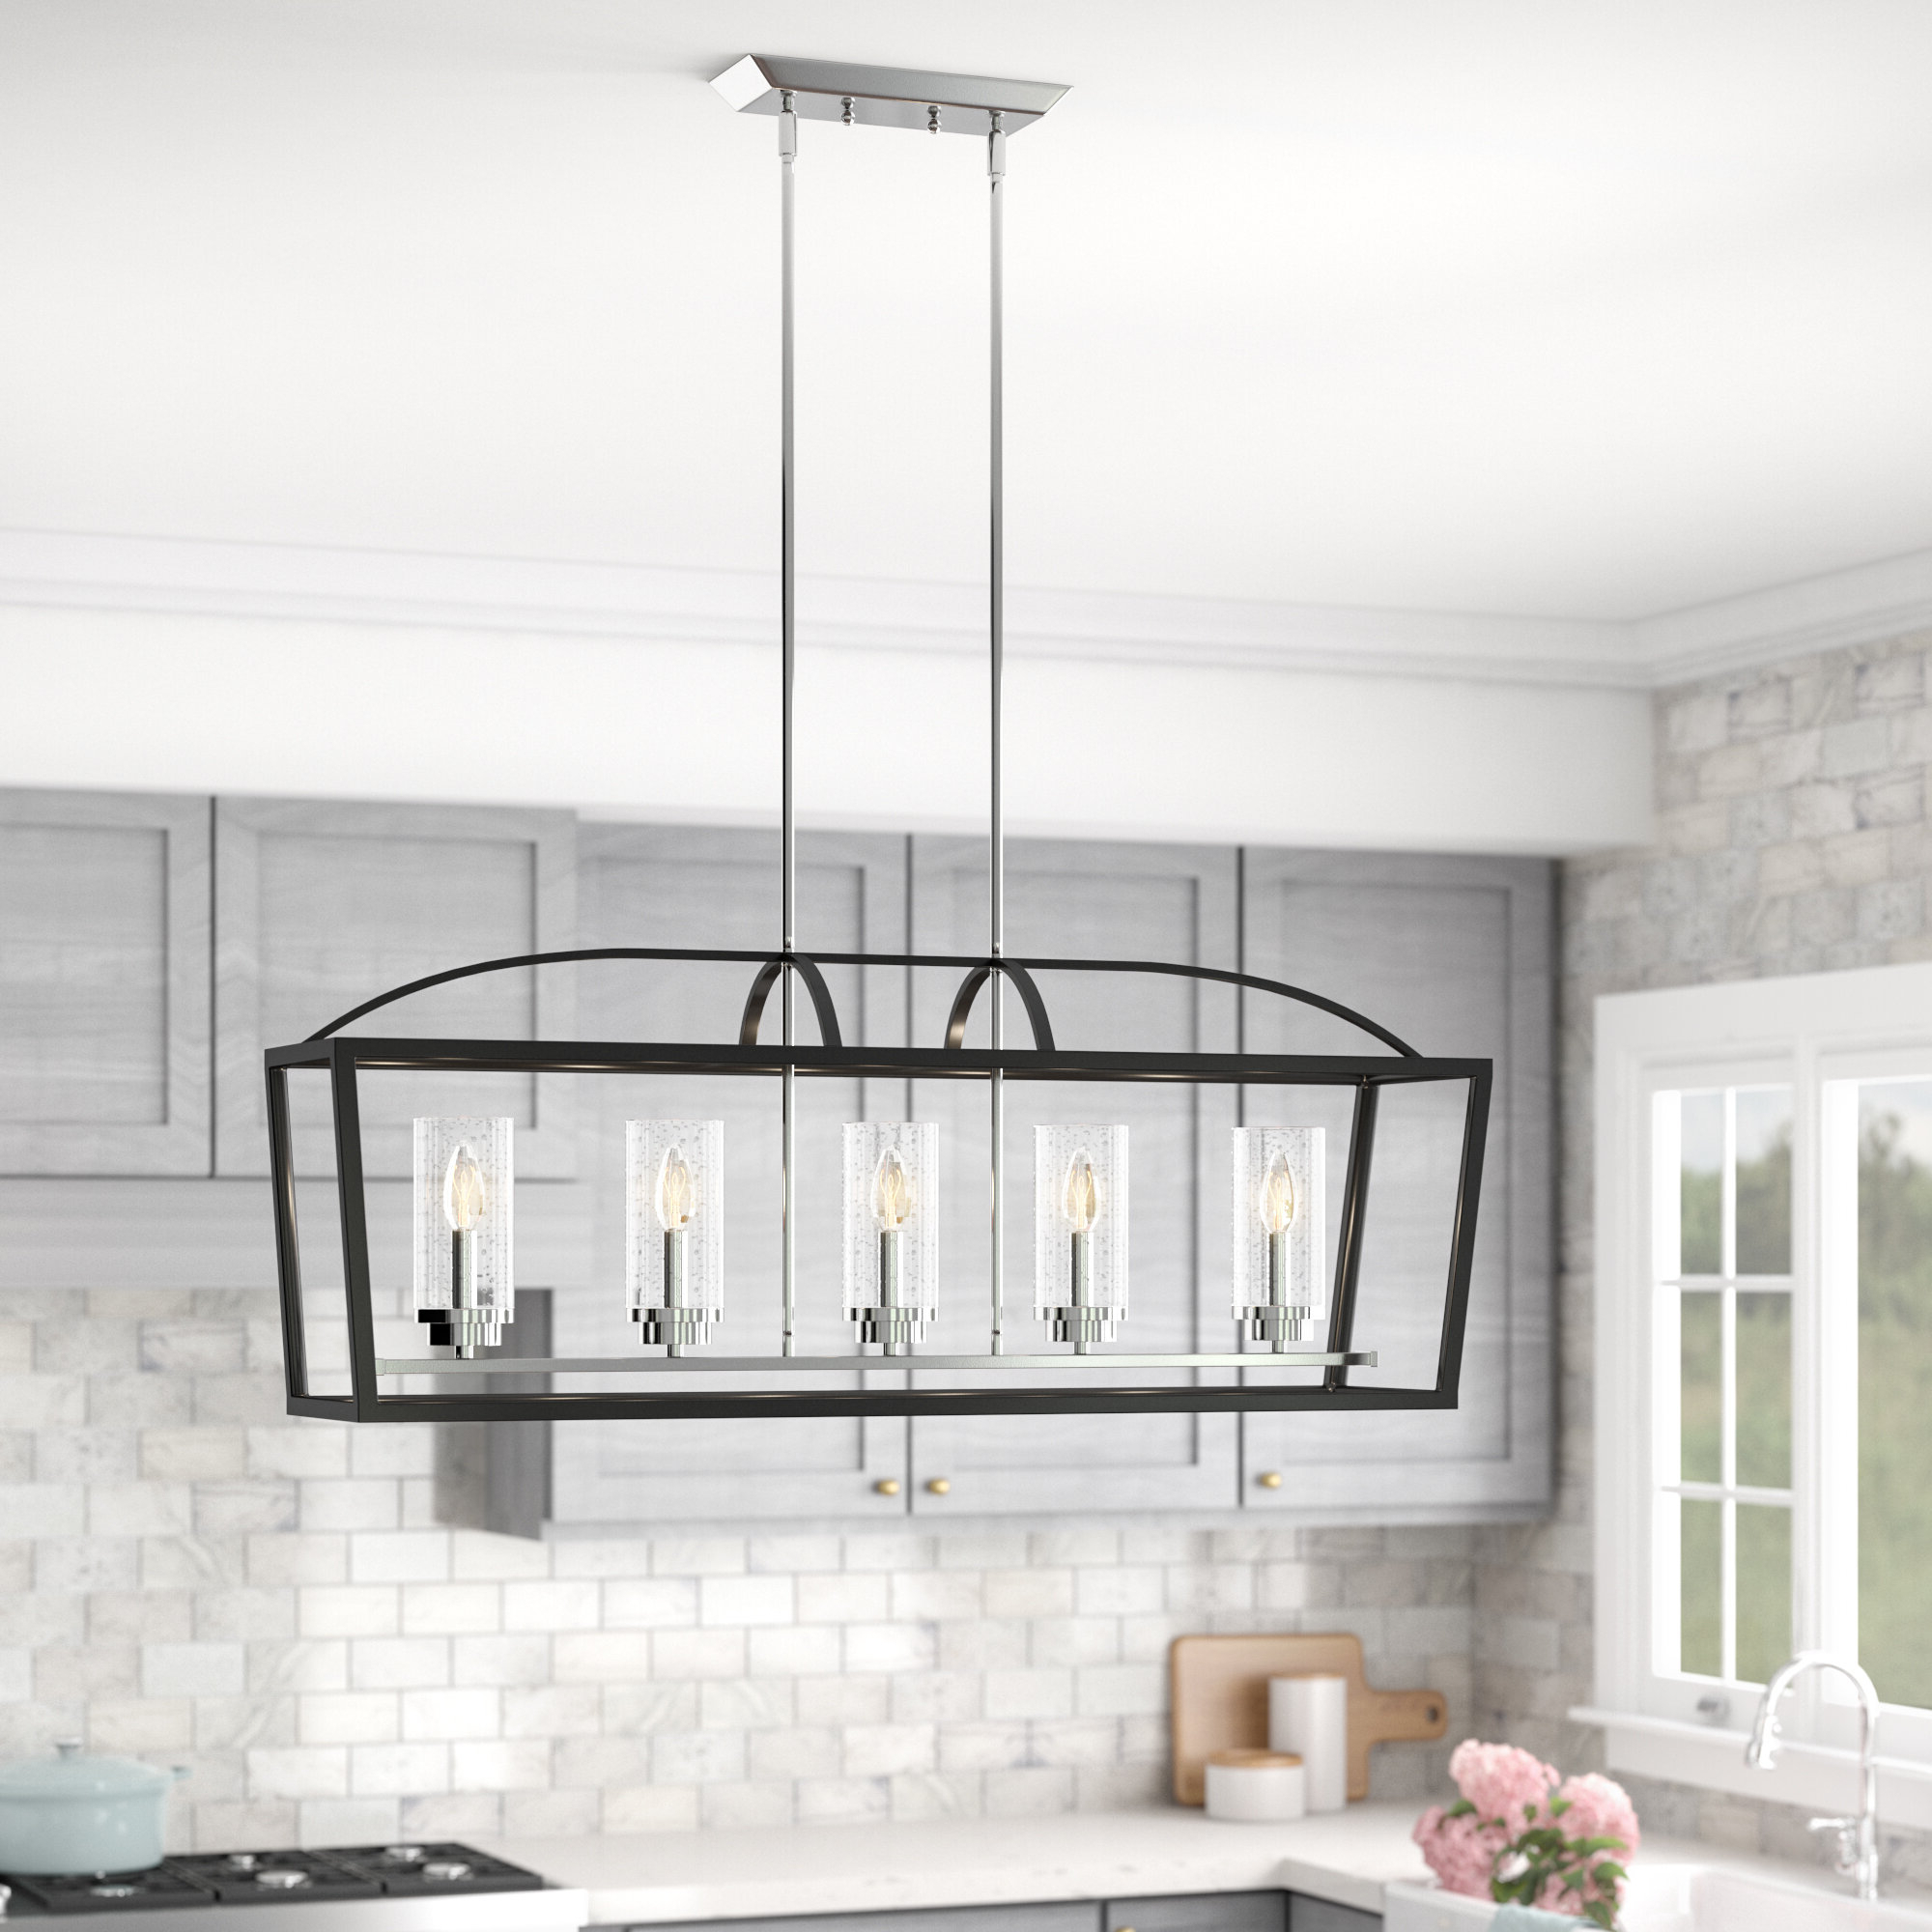 Famous Cinchring 4 Light Kitchen Island Linear Pendants Within Luna 5 Light Kitchen Island Linear Pendant (View 25 of 25)